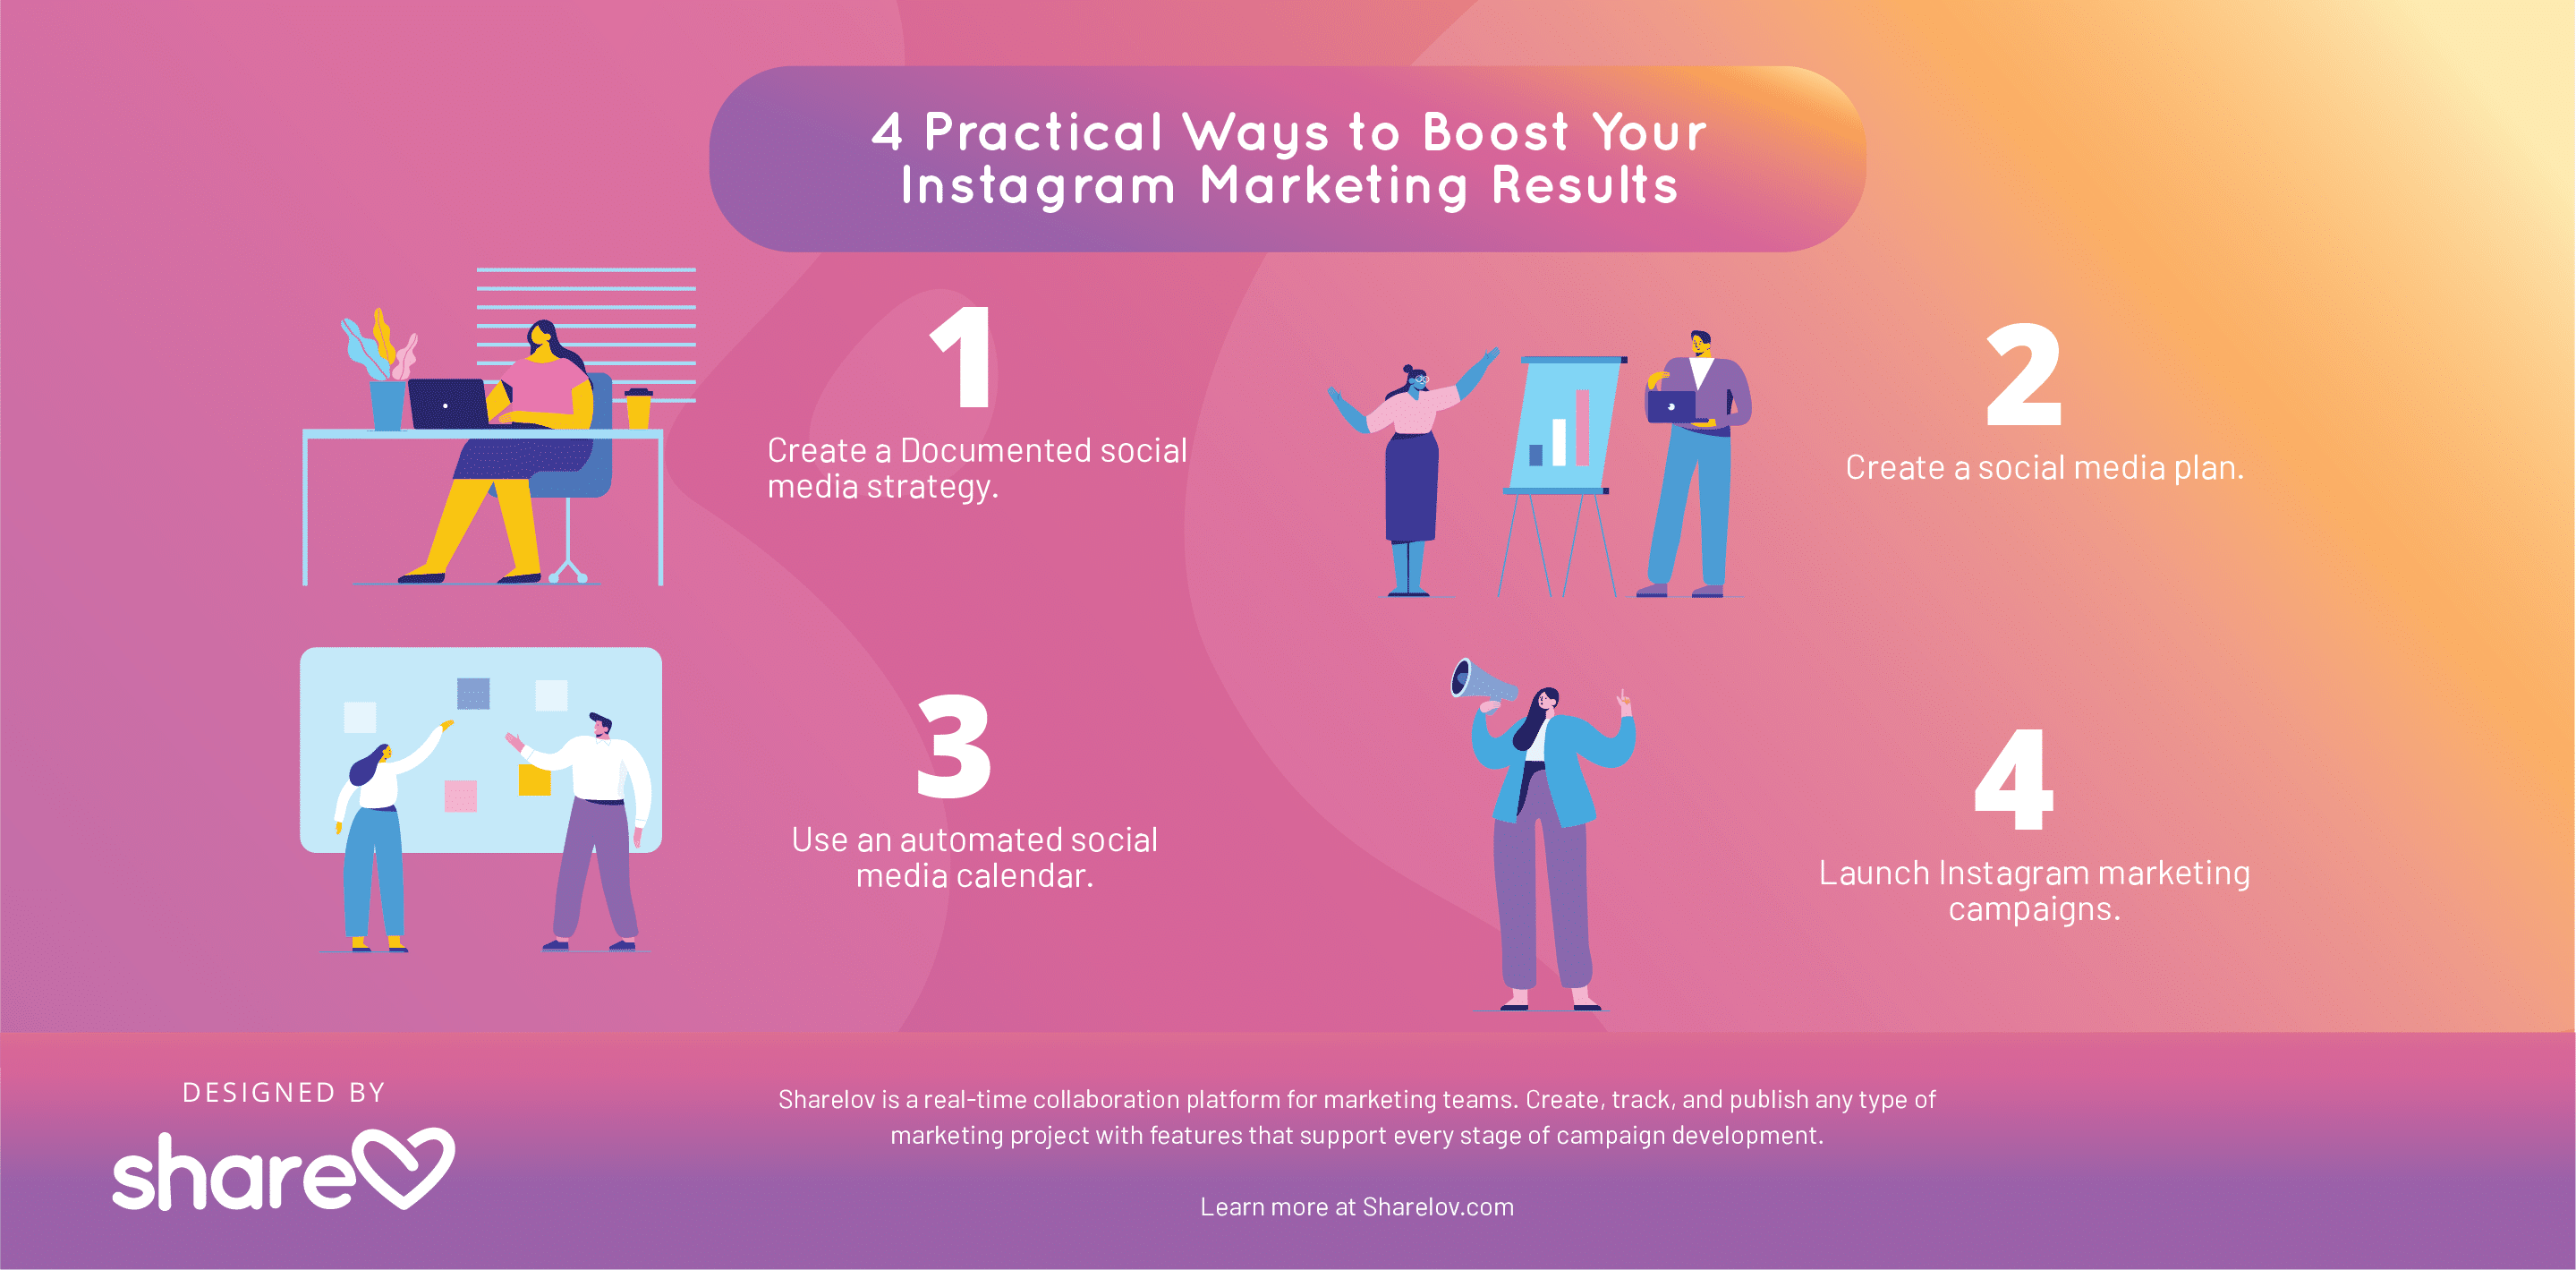 4 Practical Ways to Boost Your Instagram Marketing Results